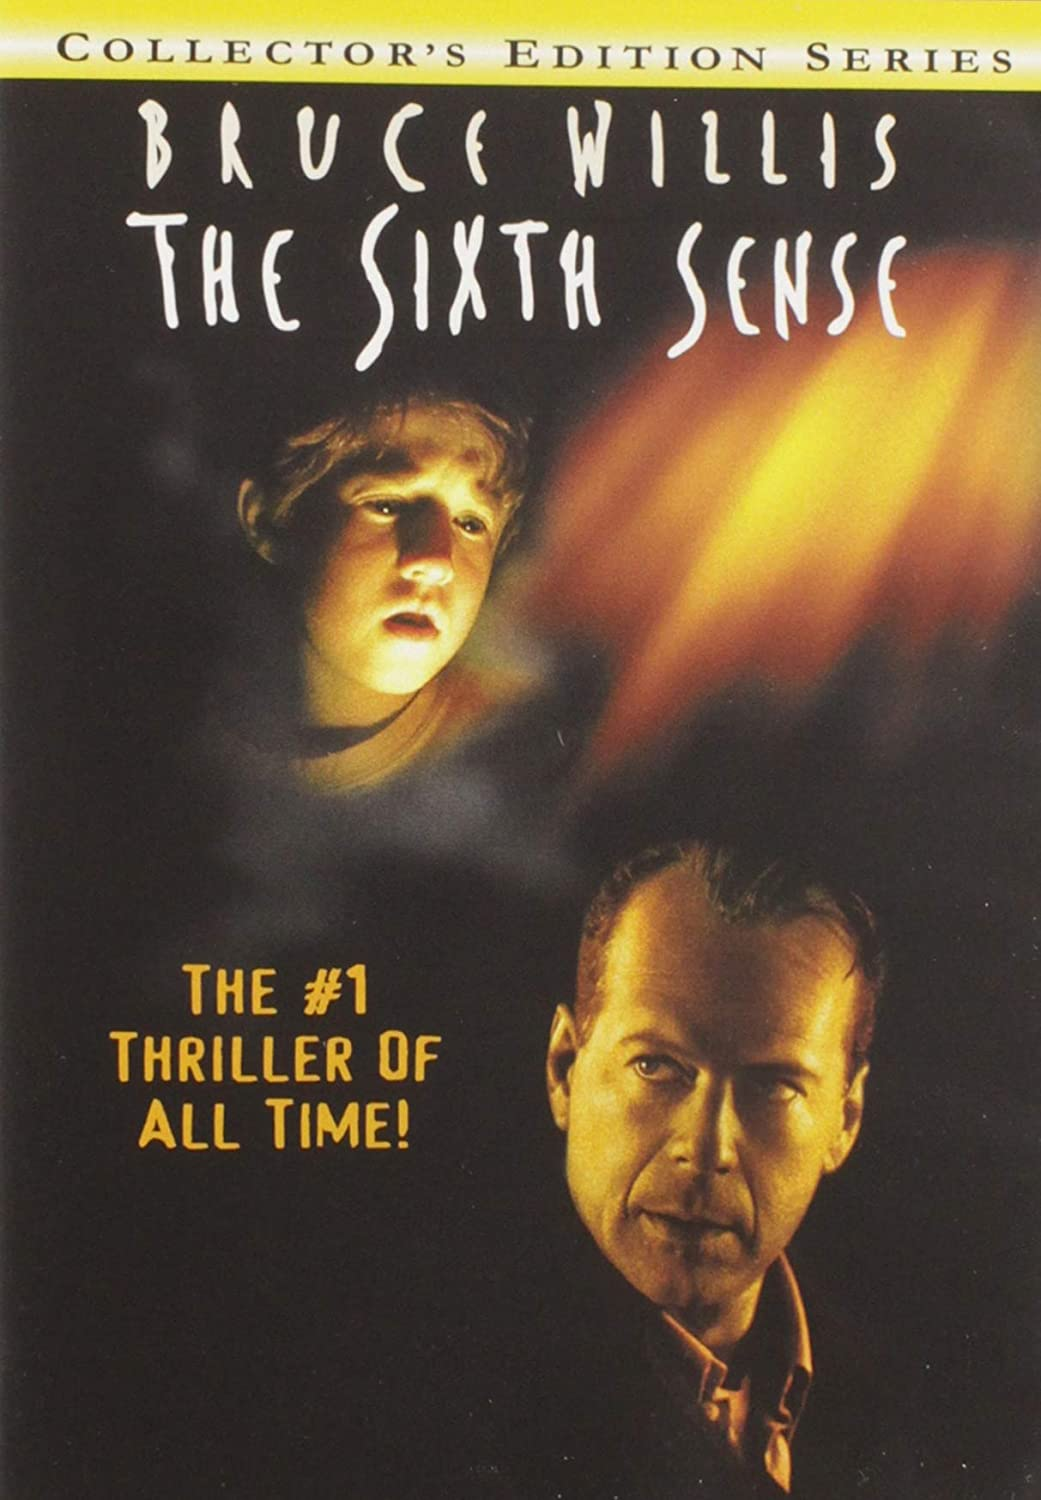 What are the Best Scary Movies? The Sixth Sense